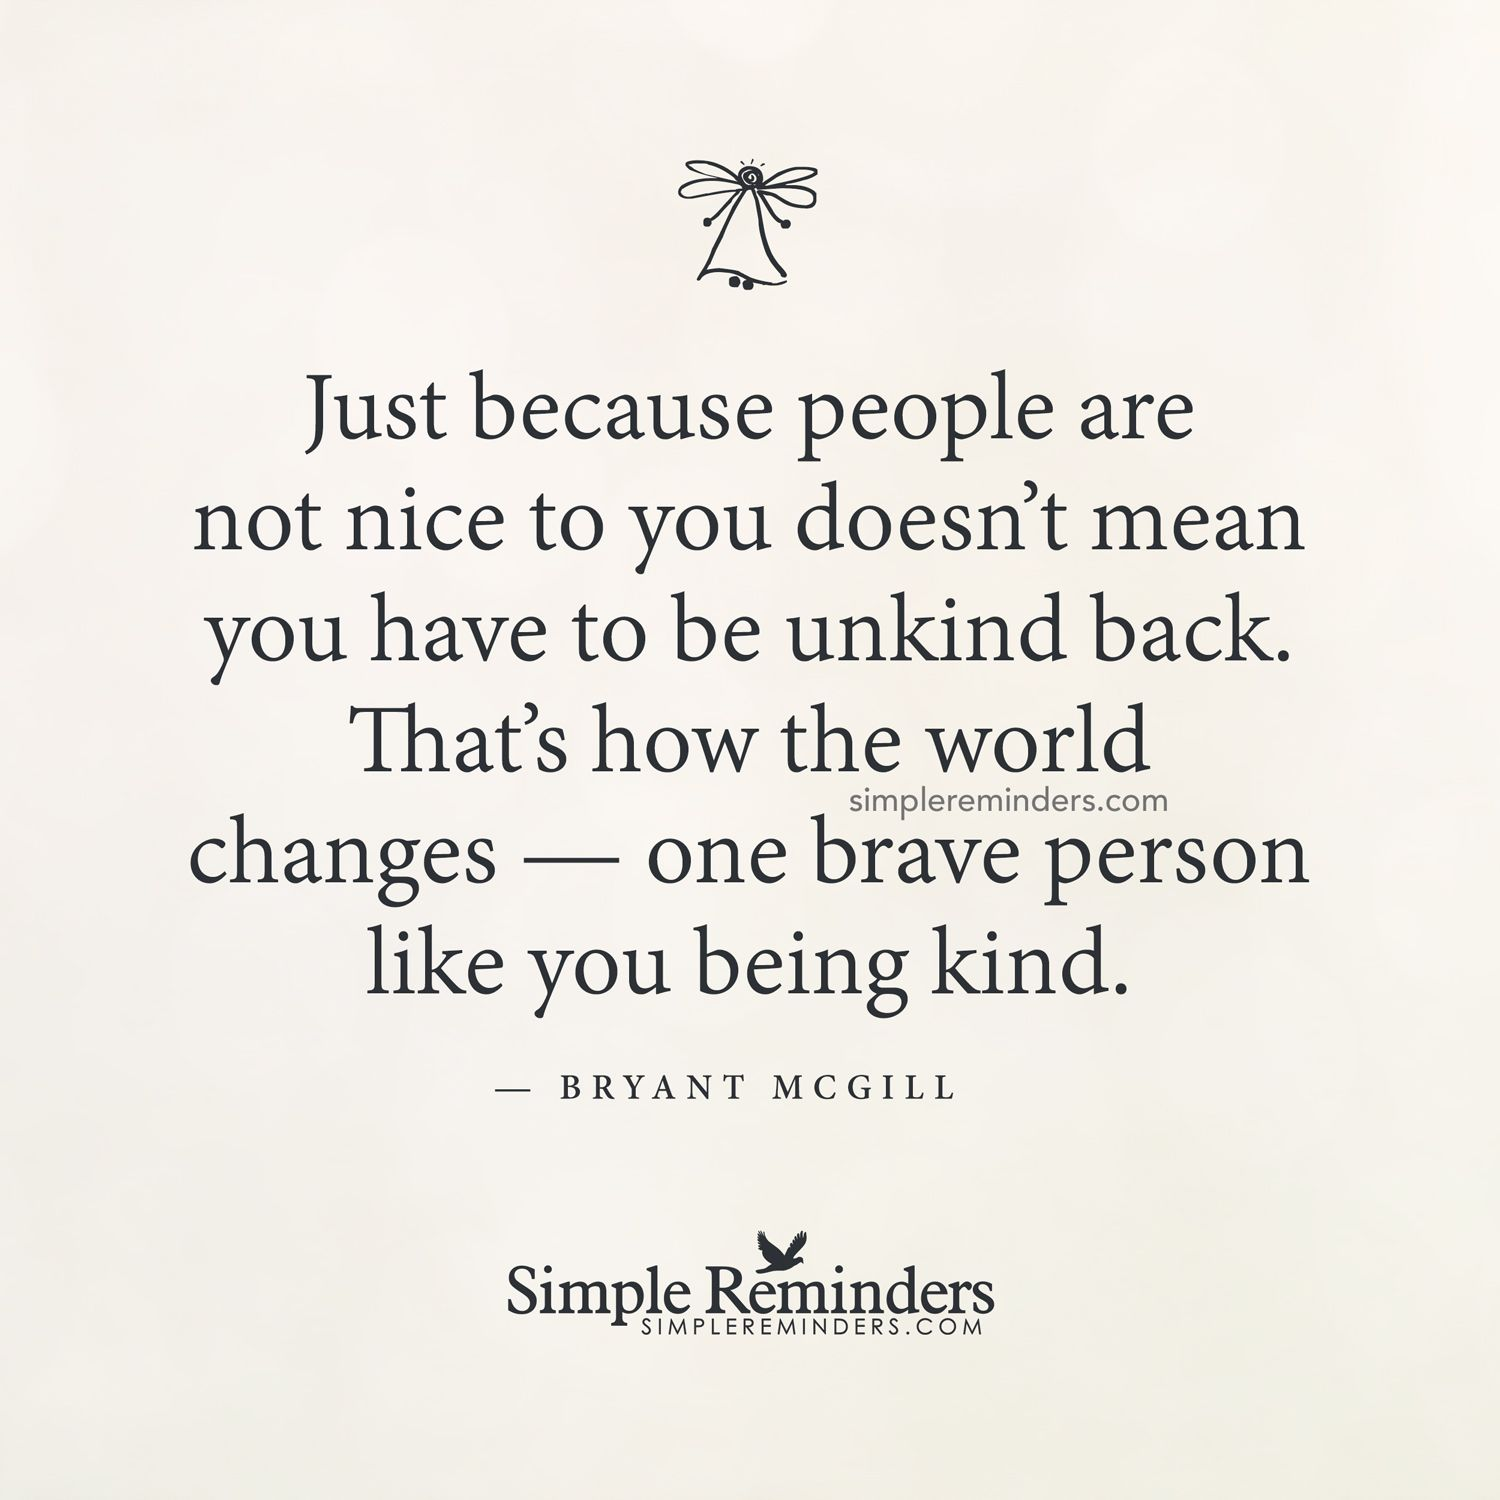 Just because people are unkind to you doesn't mean you ... Quotes About People Being Mean To You